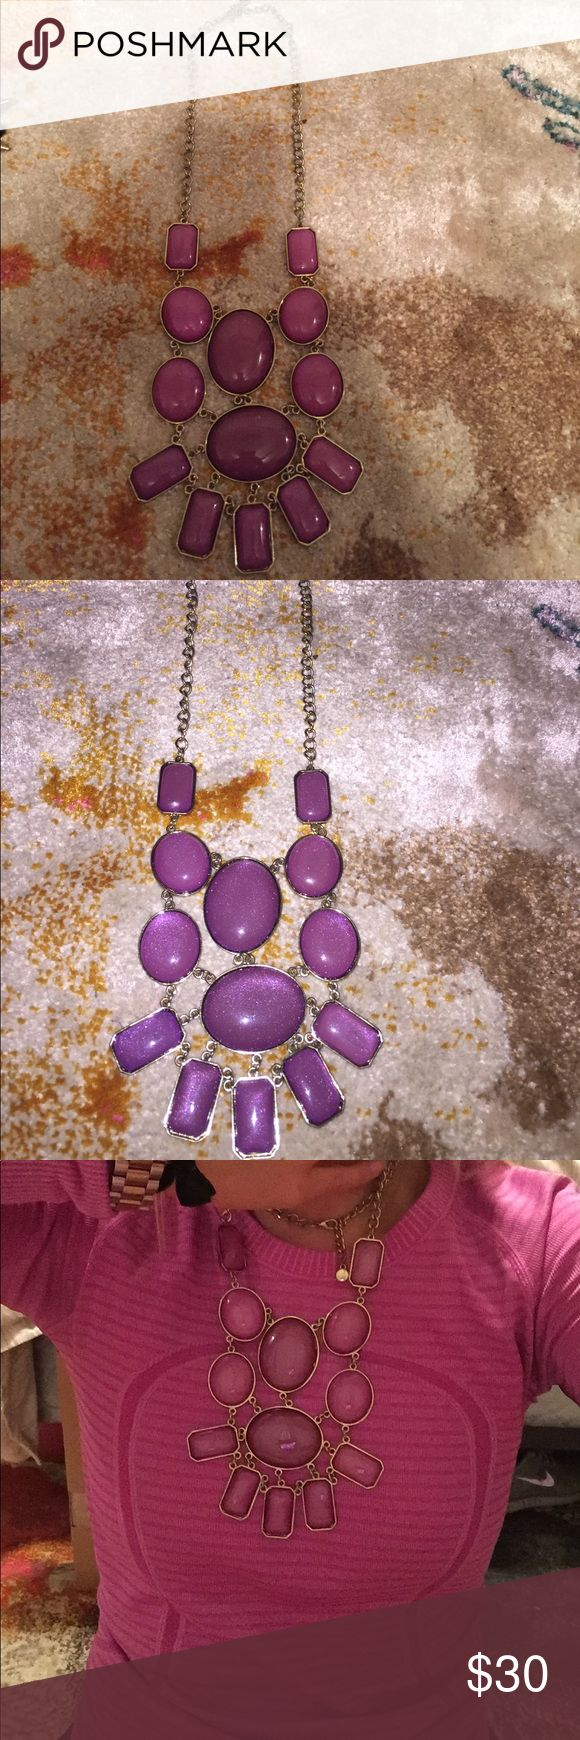 Purple/fuchsia statement necklace Real life photos above. Make an offer! Jewelry Necklaces